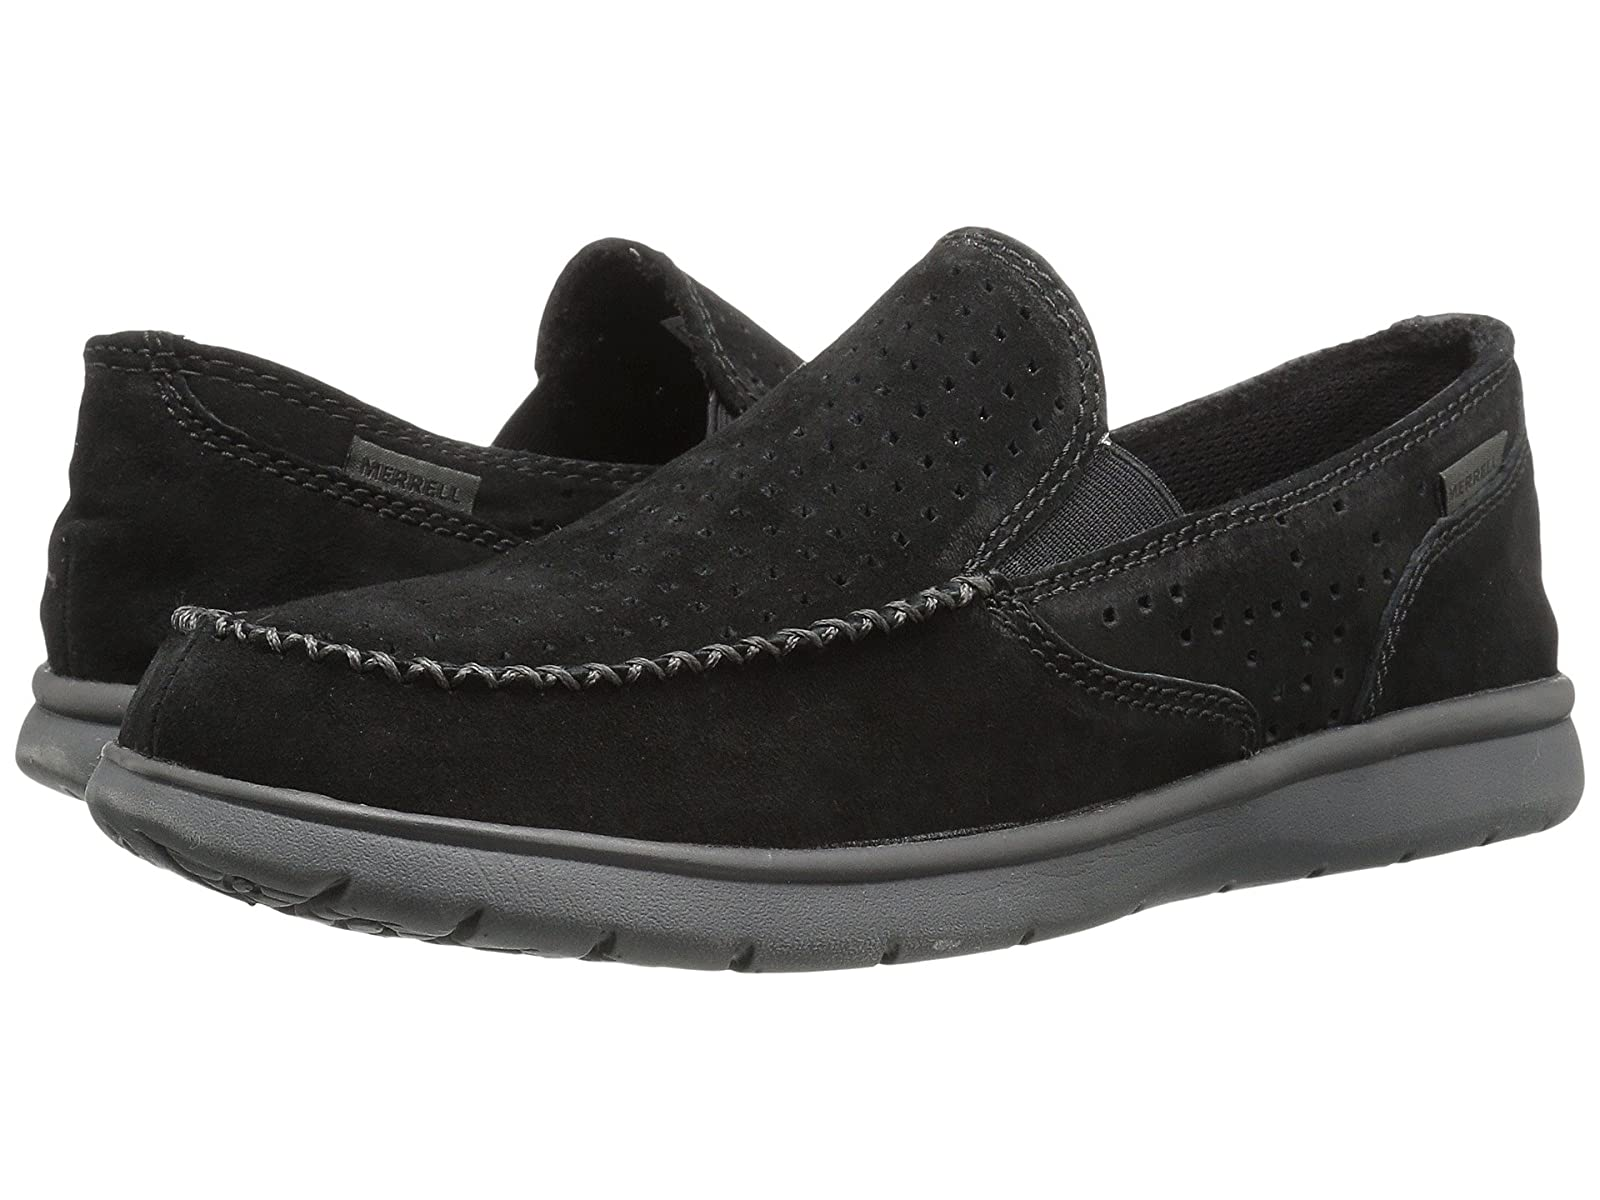 Merrell Laze Perf MocCheap and distinctive eye-catching shoes